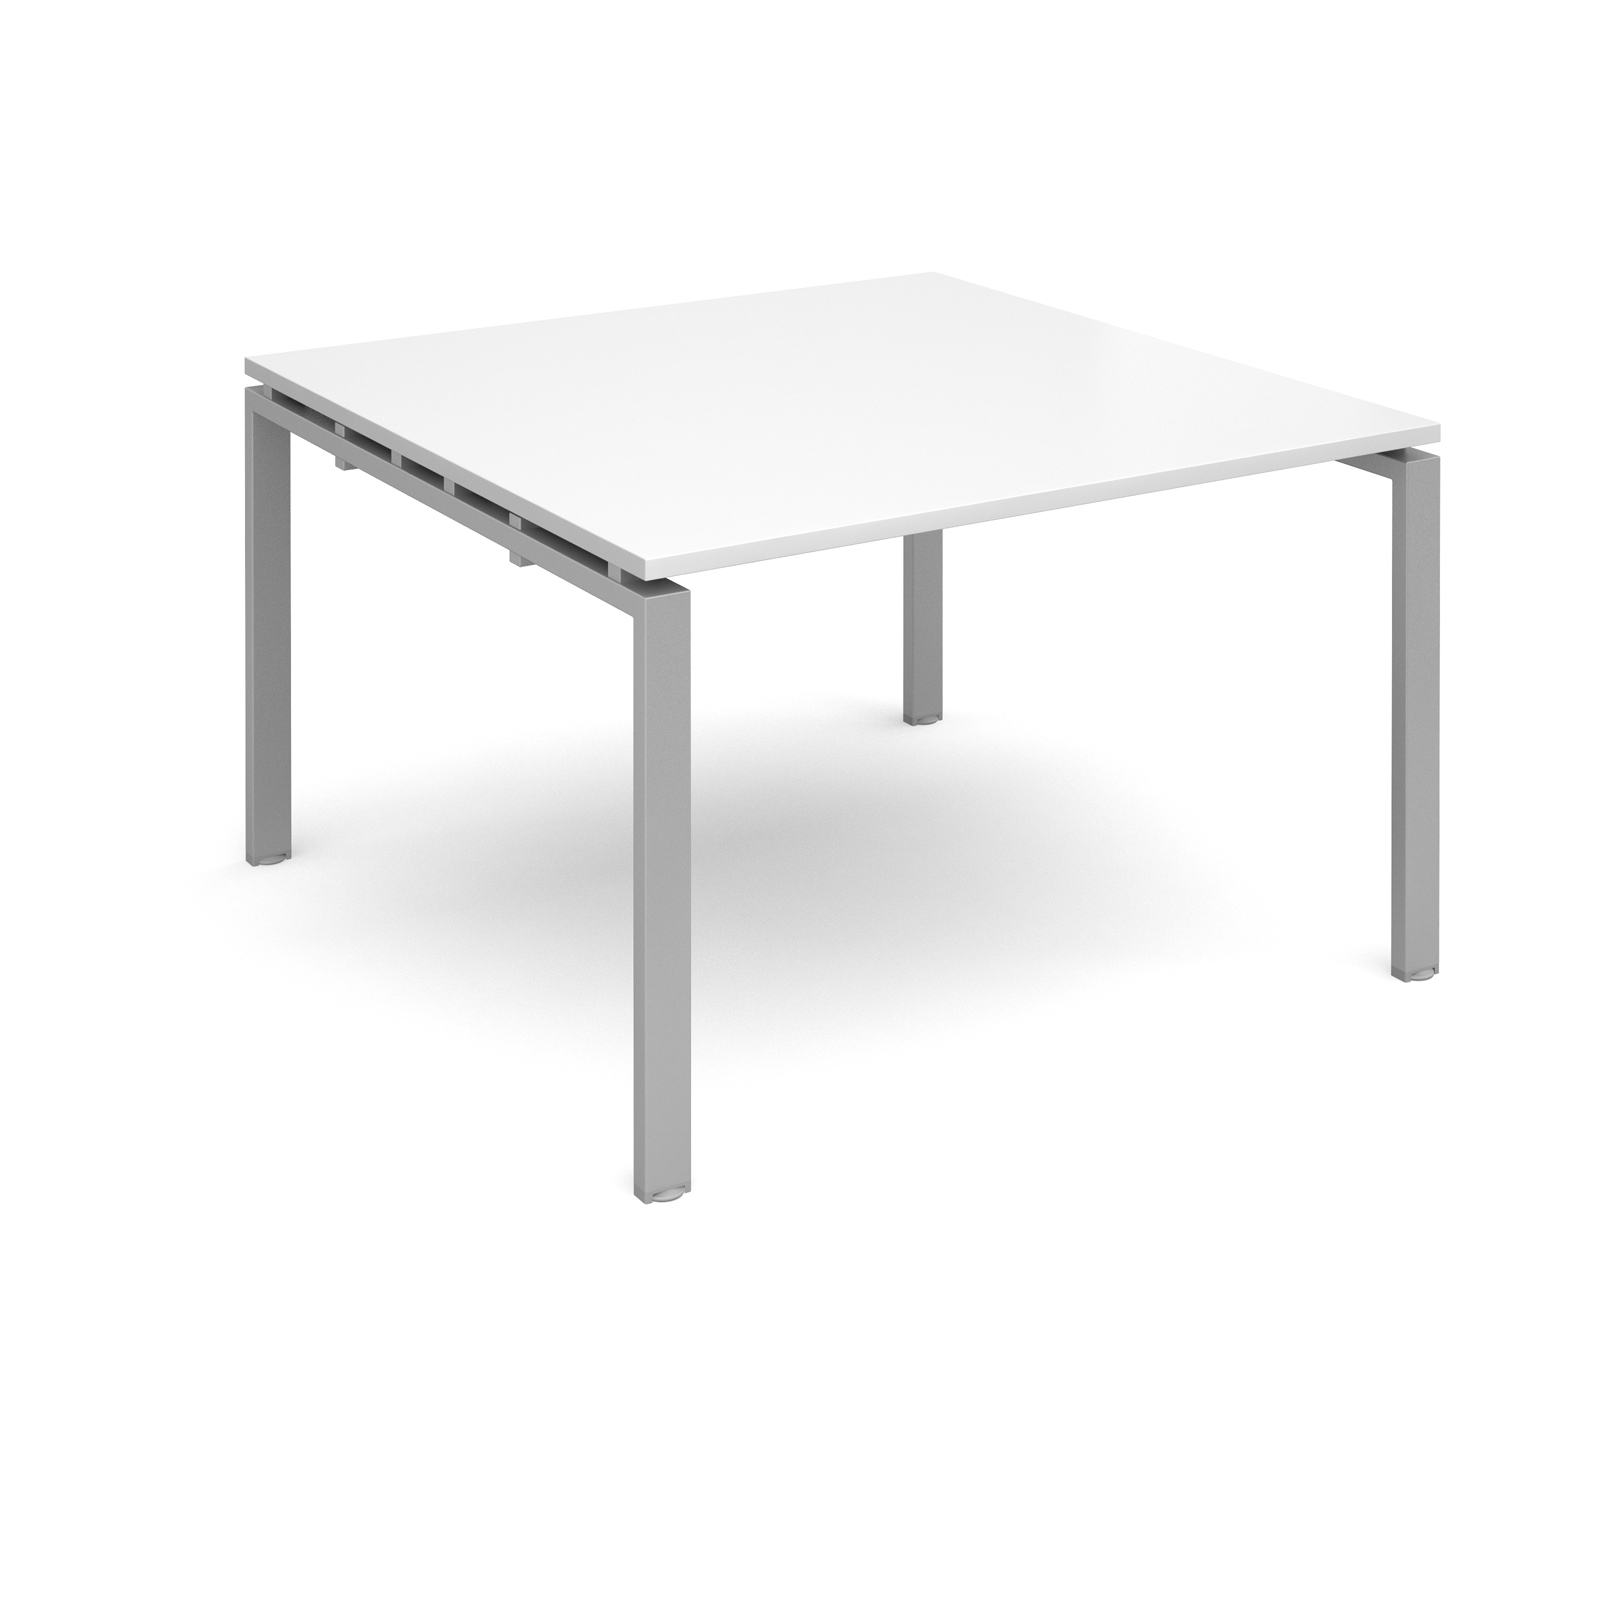 Image for Adapt II Boardroom Table Starter Unit 1200x1200mm Silver Frame White Top